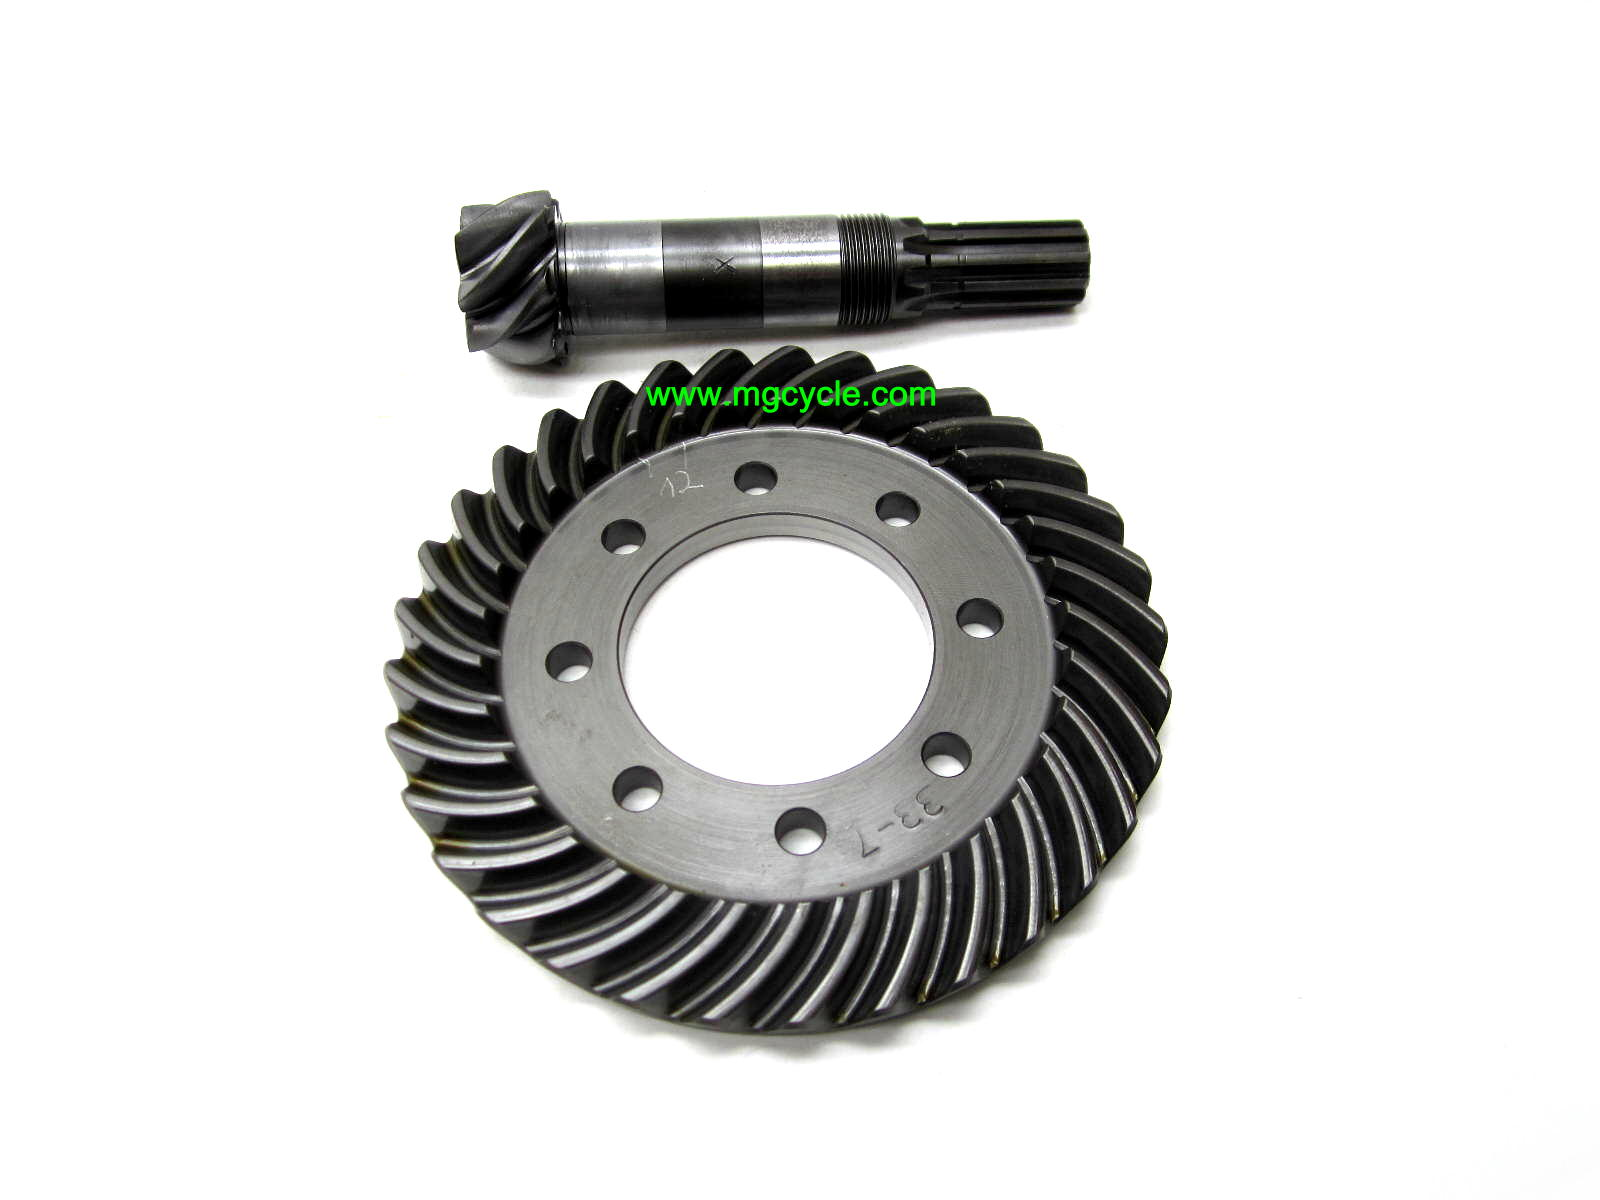 7/33 ring and pinion gear set 1975 to 1993 replaces GU17354650